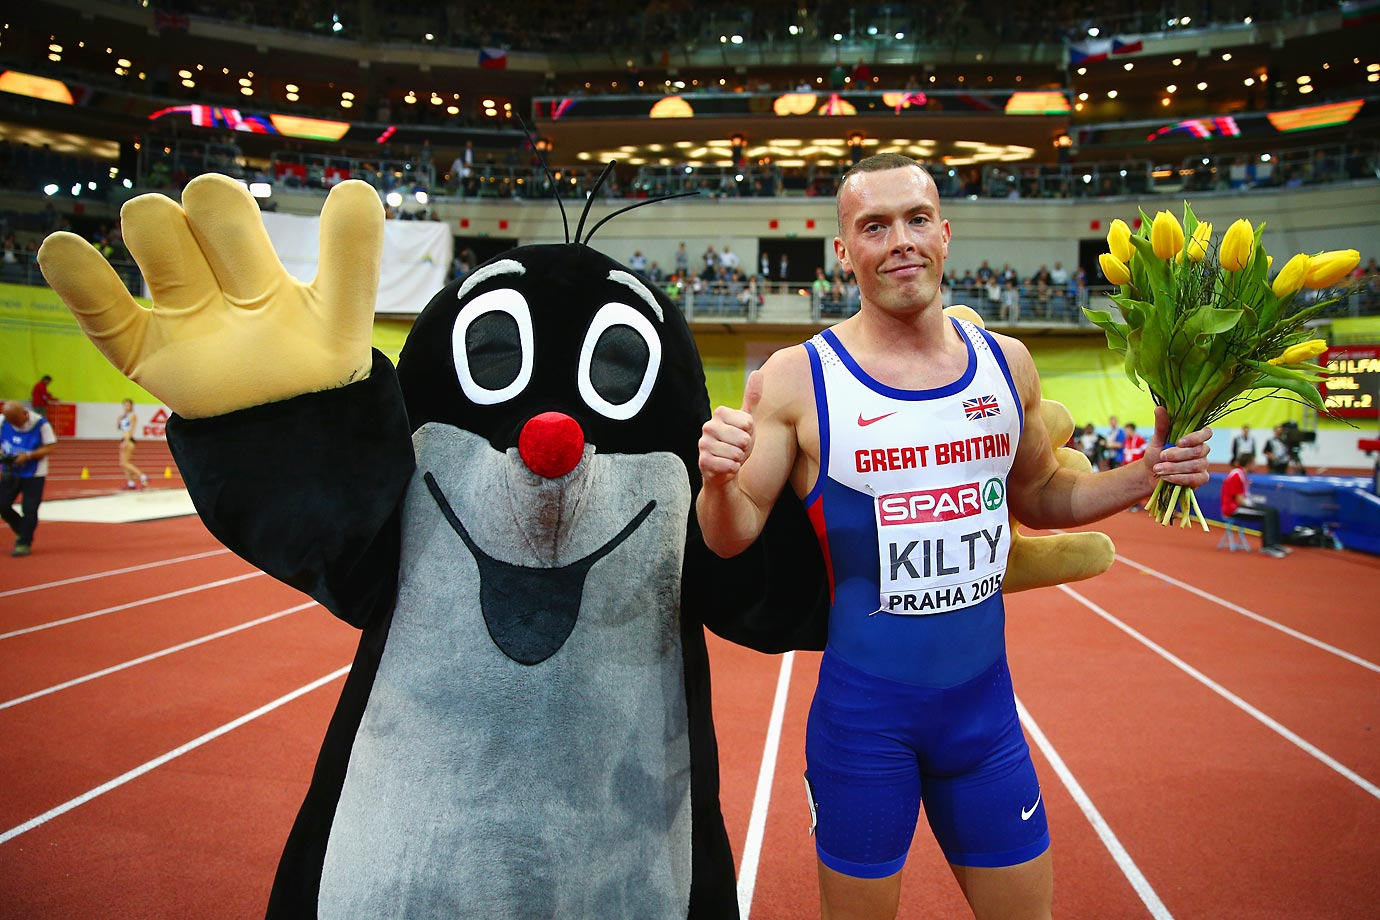 Richard Kilty of Great Britain & Northern Ireland won gold in the 60-meter final at the 2015 European Athletics Indoor Championships.